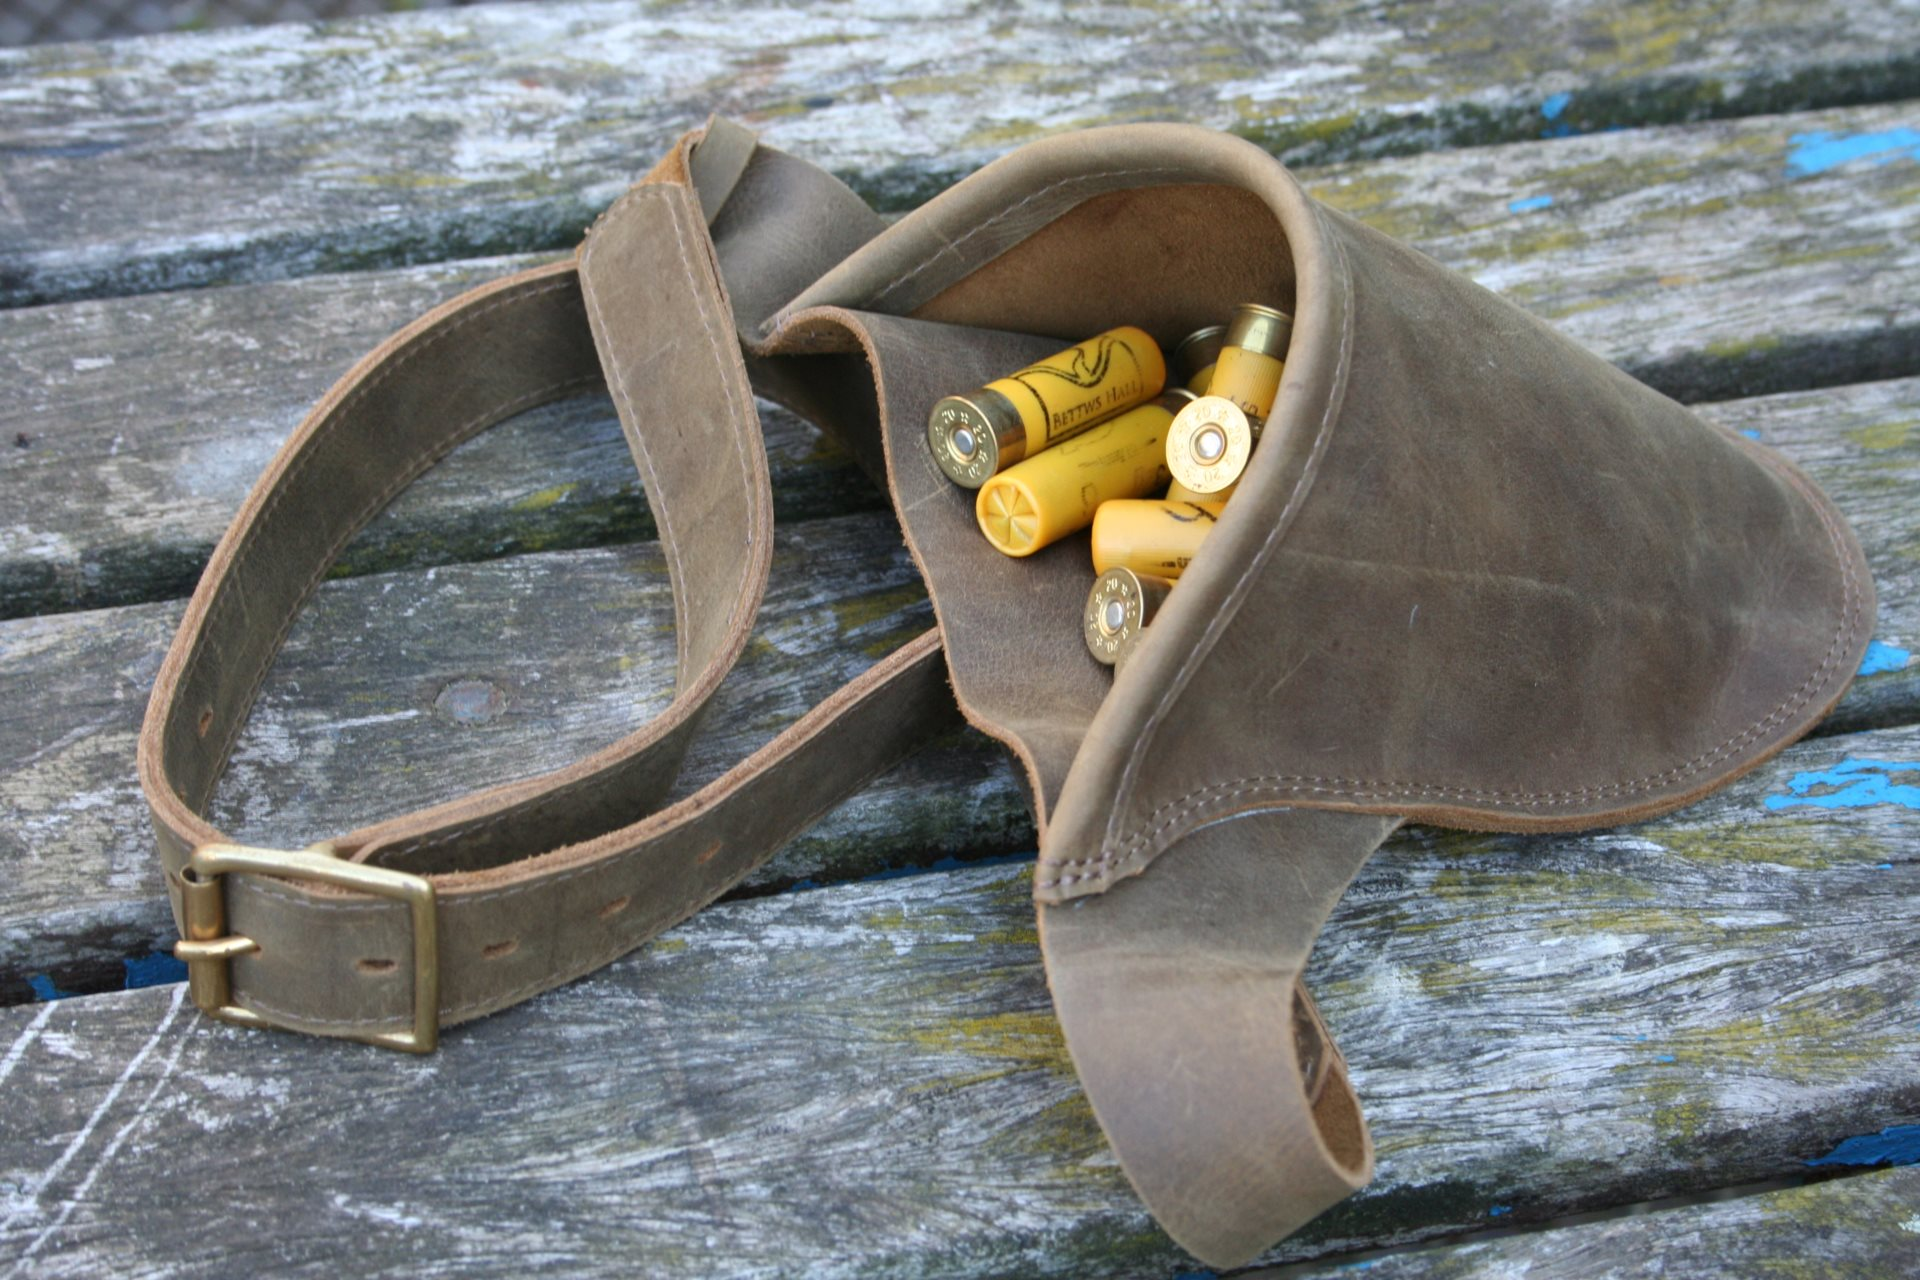 Cartridge Belt Pouch